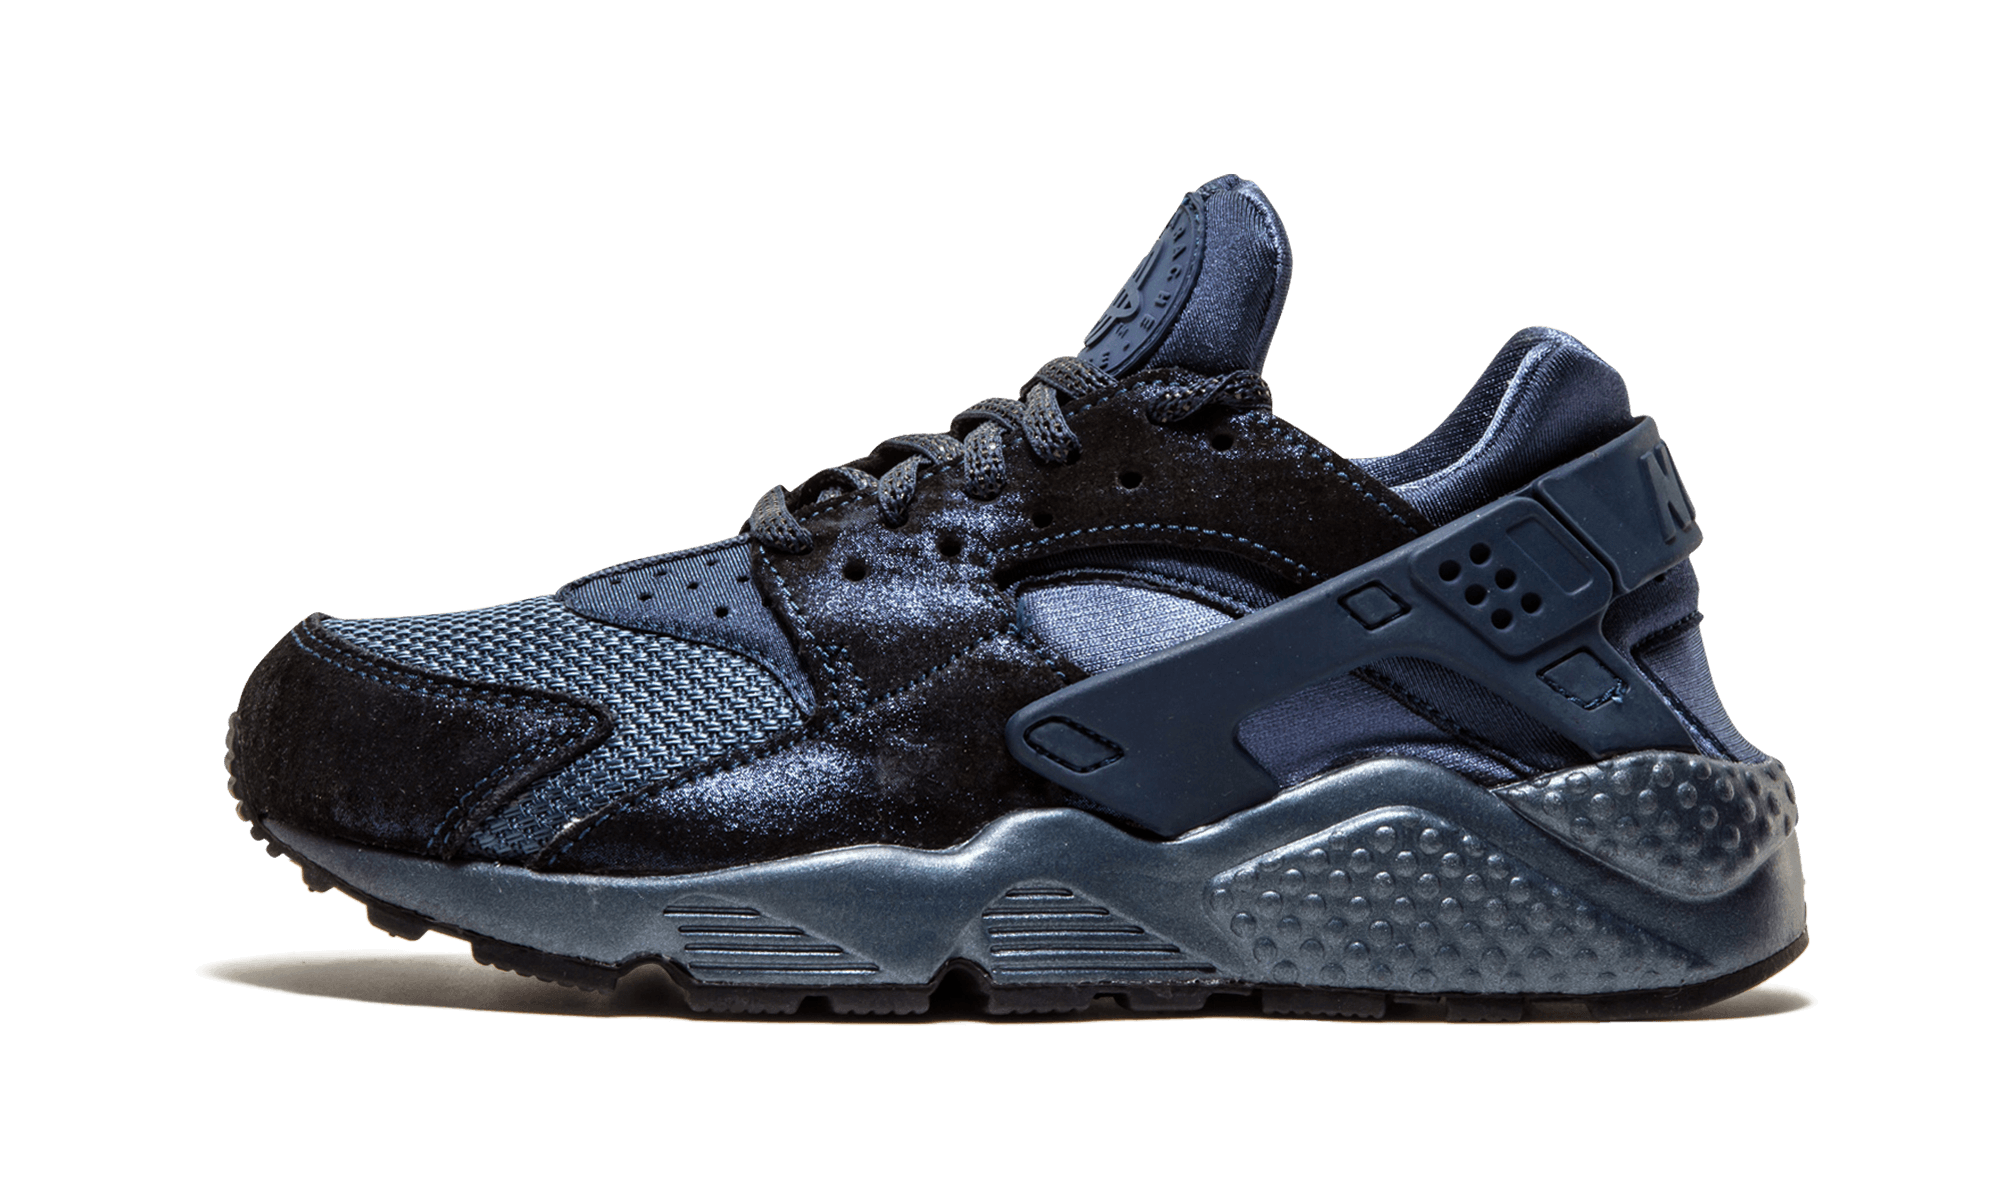 new style b3c38 012cb ... women s Nike Air Huarache features a bold yet elegant makeover in  metallic-treated suede drenched in a tonal navy colorway. WMNS Air Huarache  Run PRM ...